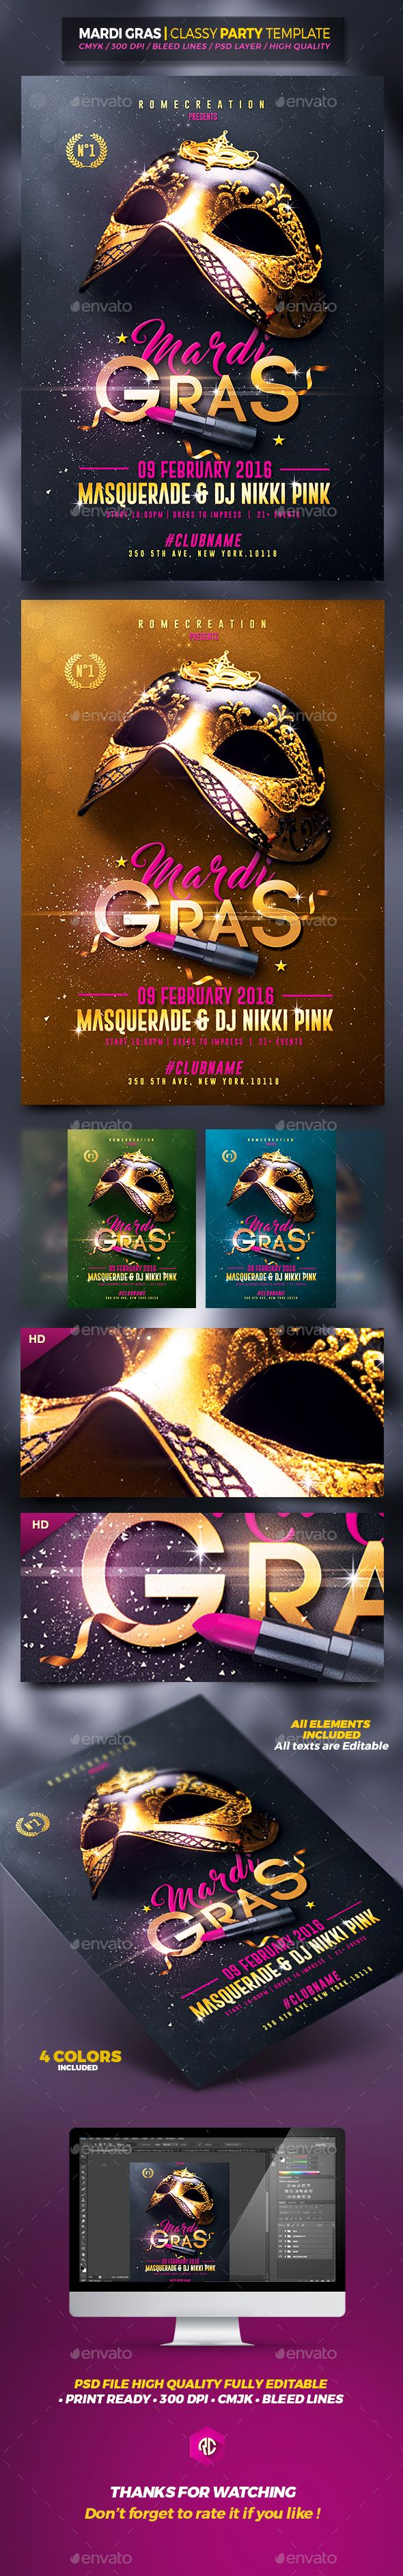 Mardi Gras | Classy Flyer Template. Print-templates Flyers Events. To help discover this anniversary party, black, brazil, carnaval, Carnival Event, carnival party, celebration, chic, classy, club, Costumes, event, fat Tuesday, festival, flyer, gold, mardi, mardi gras, mask, masks, Masquerade Ball, music, private, psd, rome creation, sexy, St Louis, st patricks, and template.